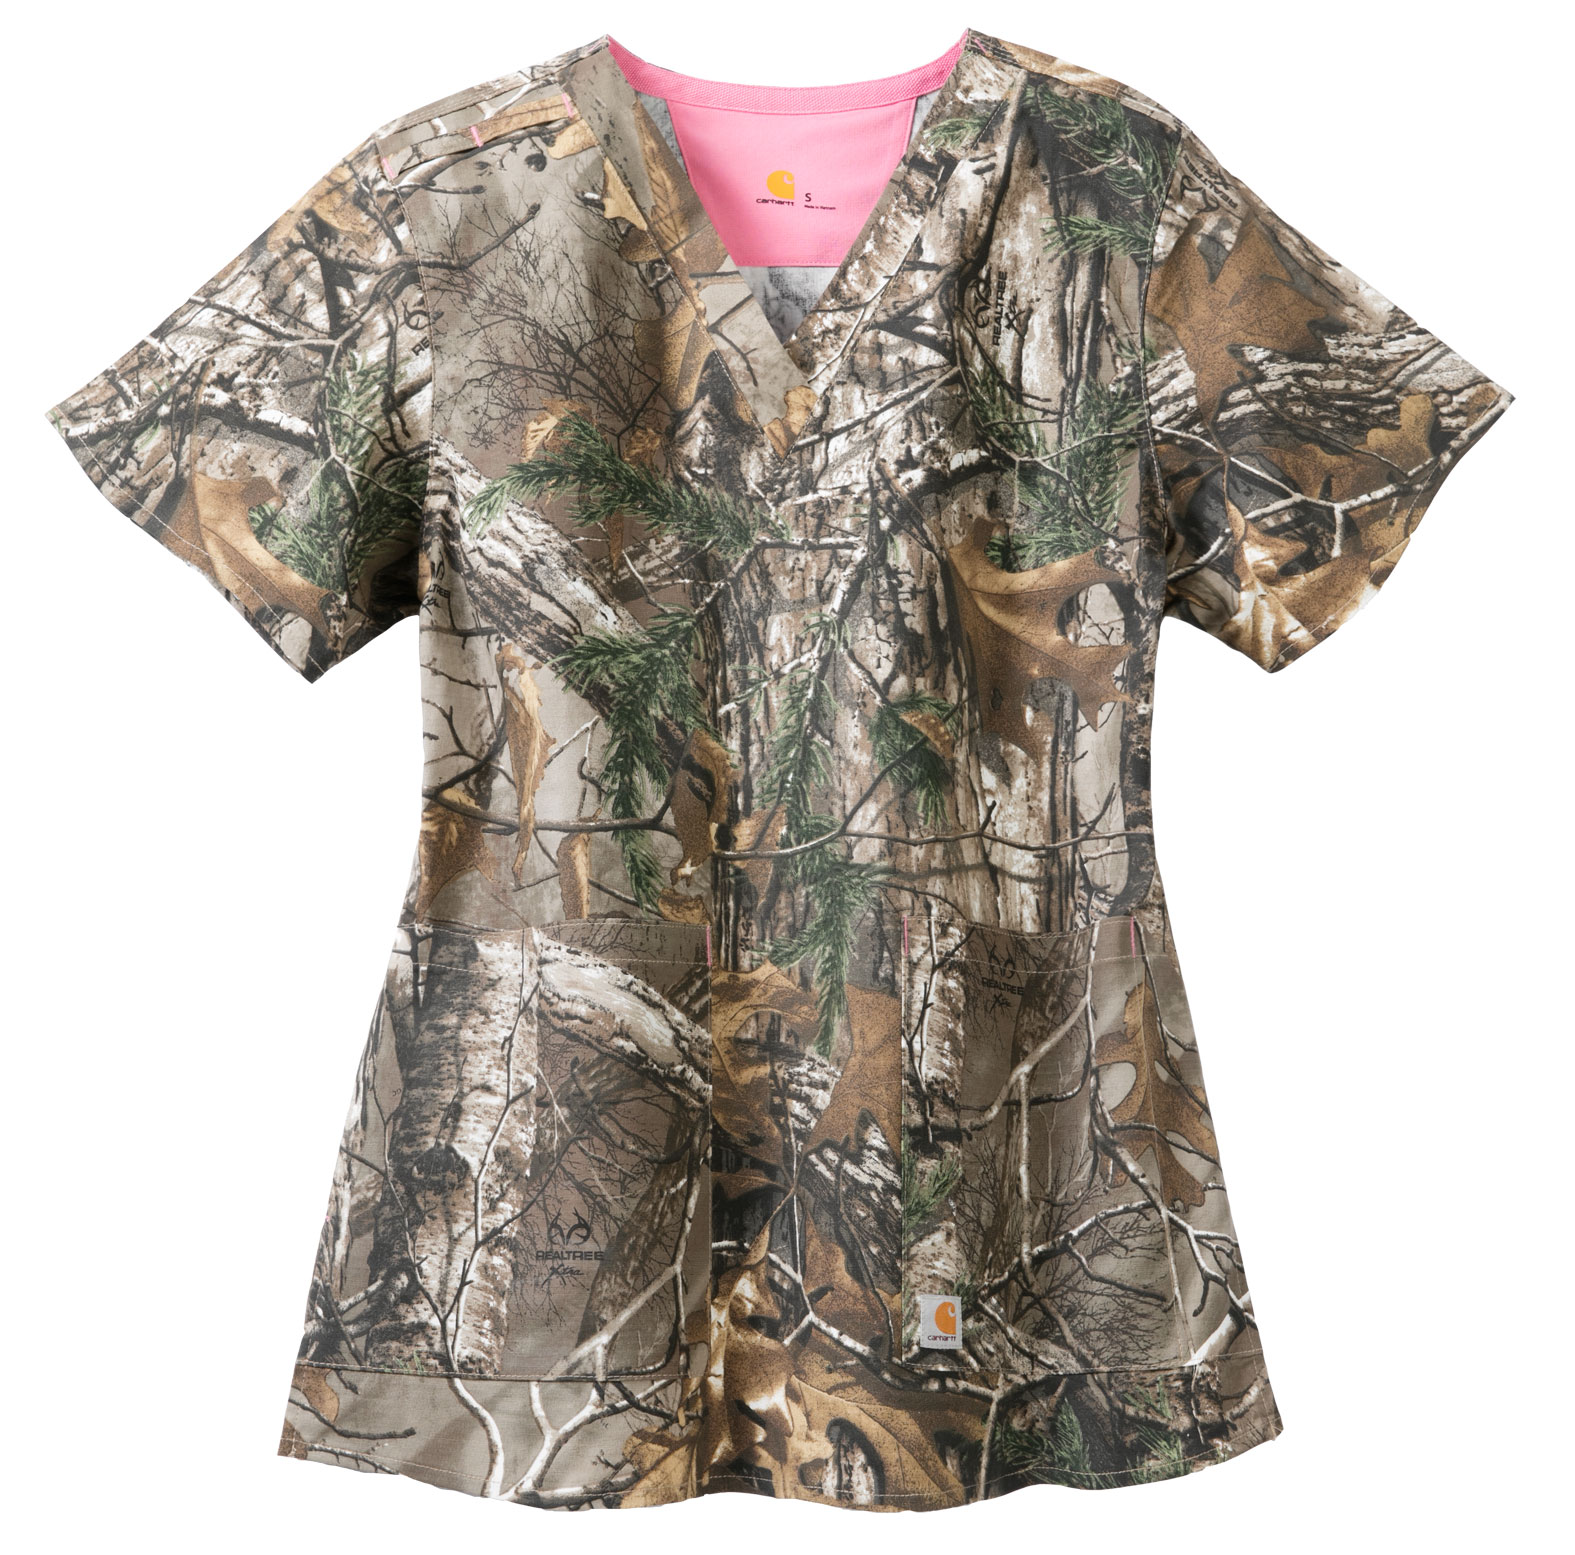 Carhartt Medical Ladies Realtree Print V-Neck Top